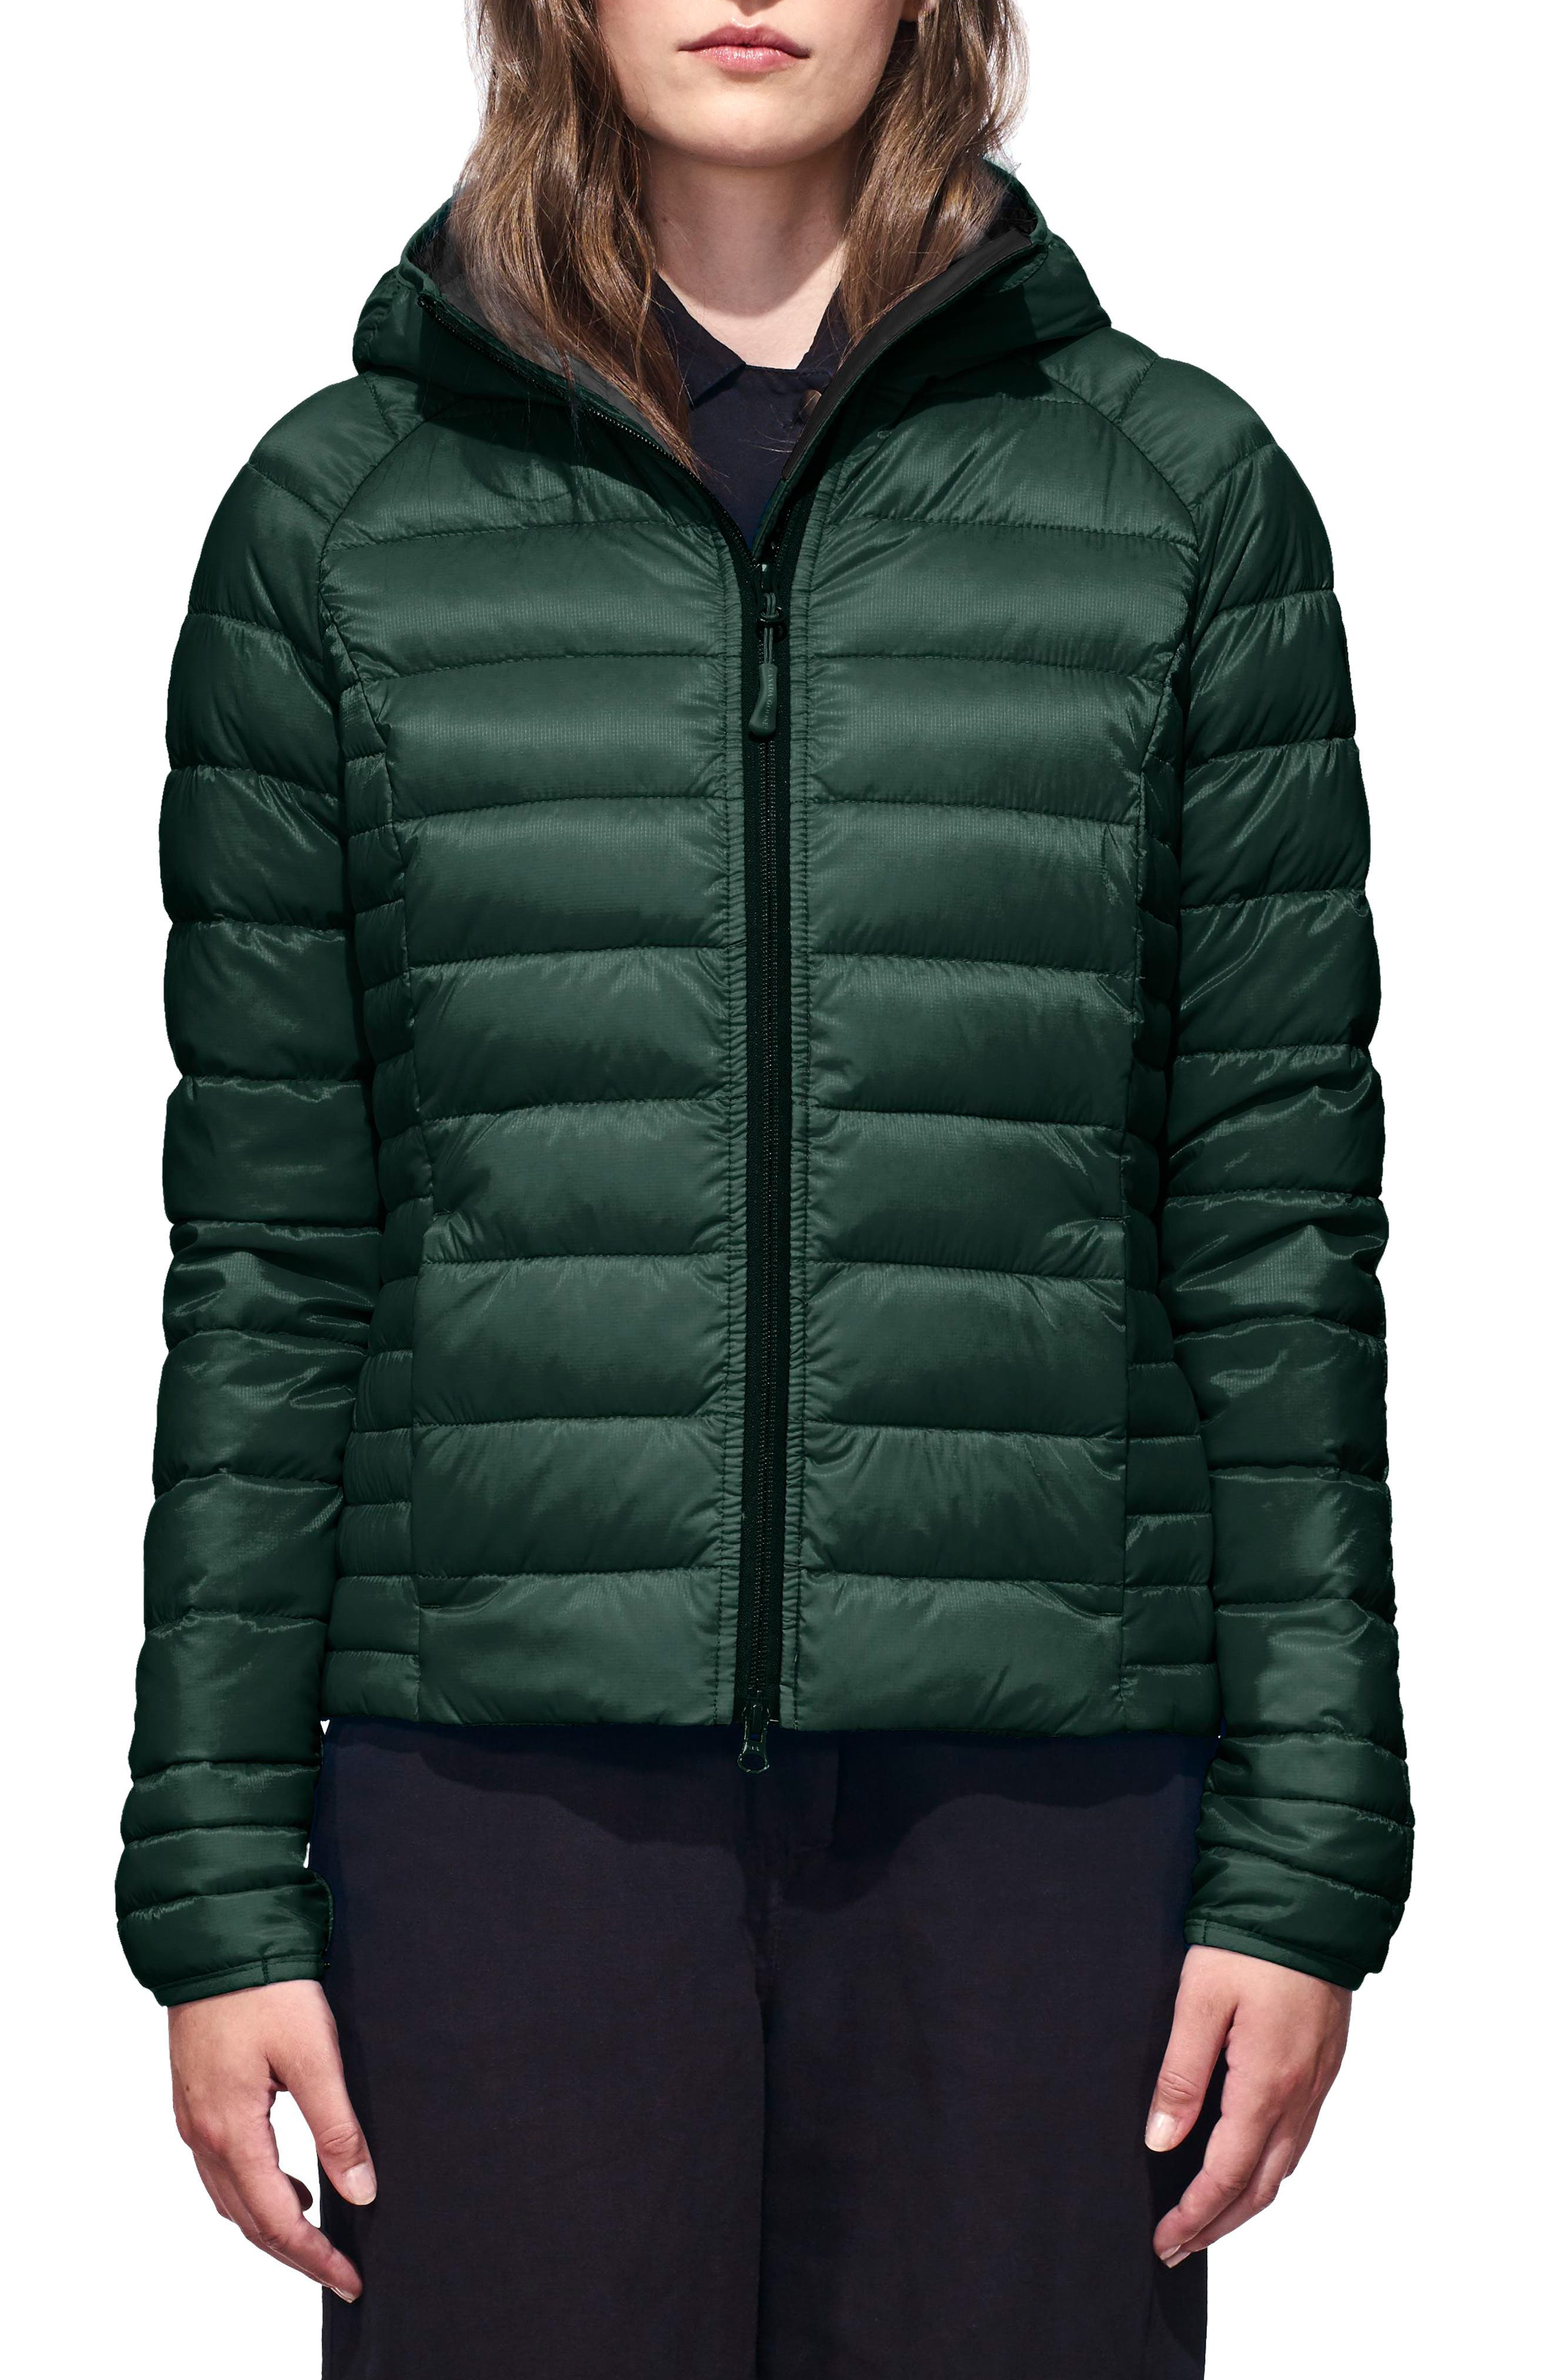 'Brookvale' Packable Hooded Quilted Down Jacket,                             Main thumbnail 1, color,                             SPRUCE/BLACK